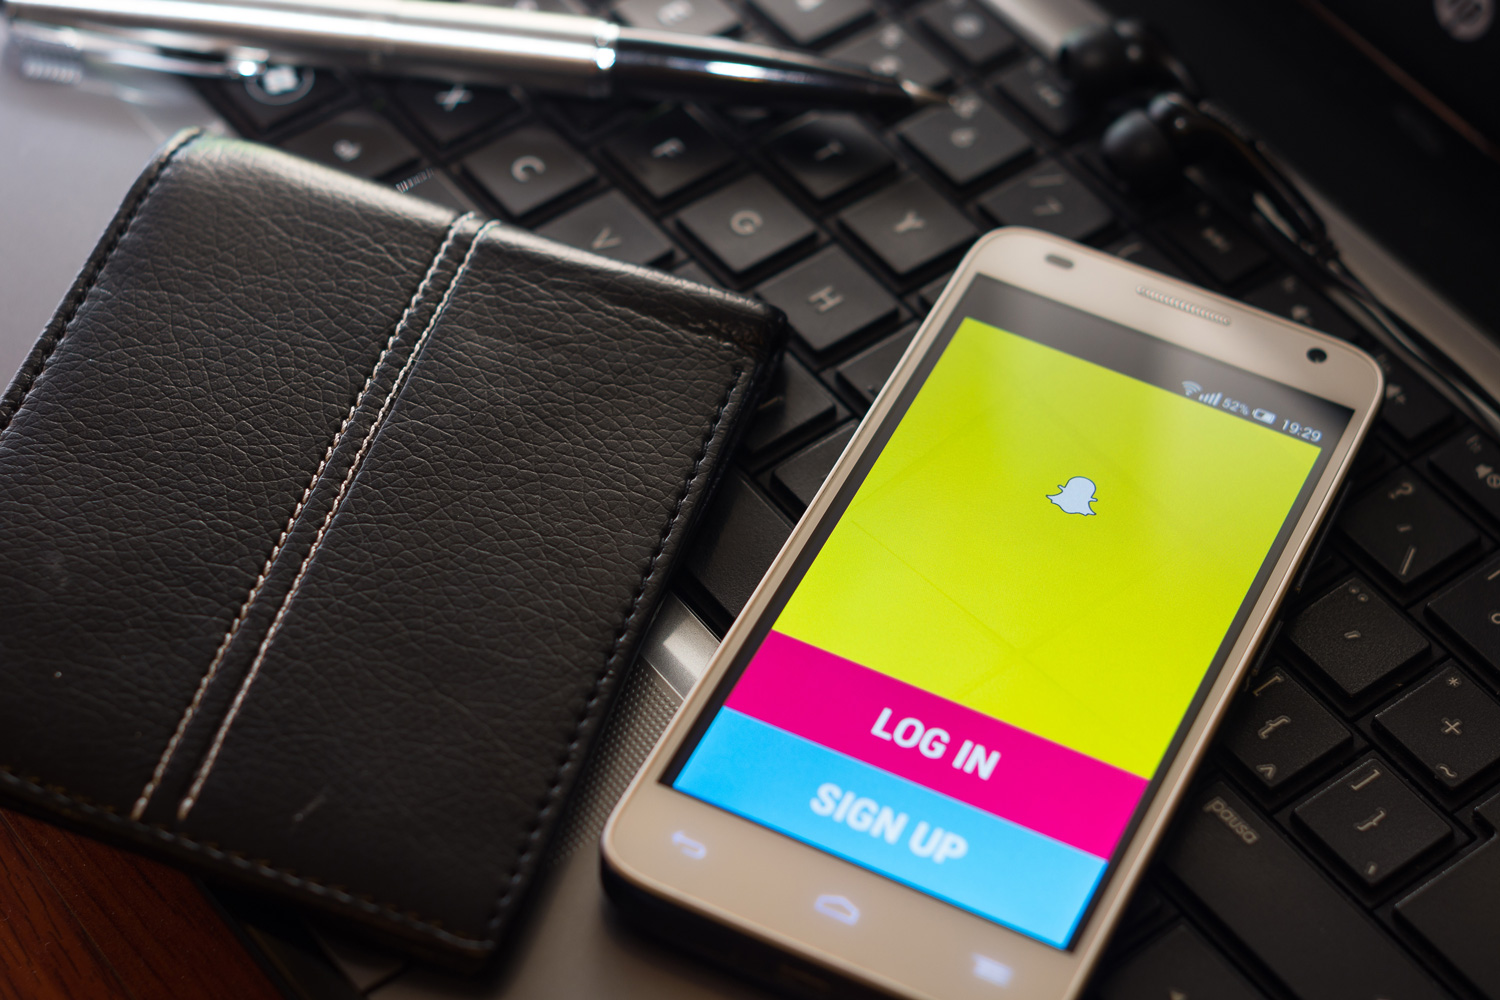 16 Snapchat Tips and Tricks - Digital Trends